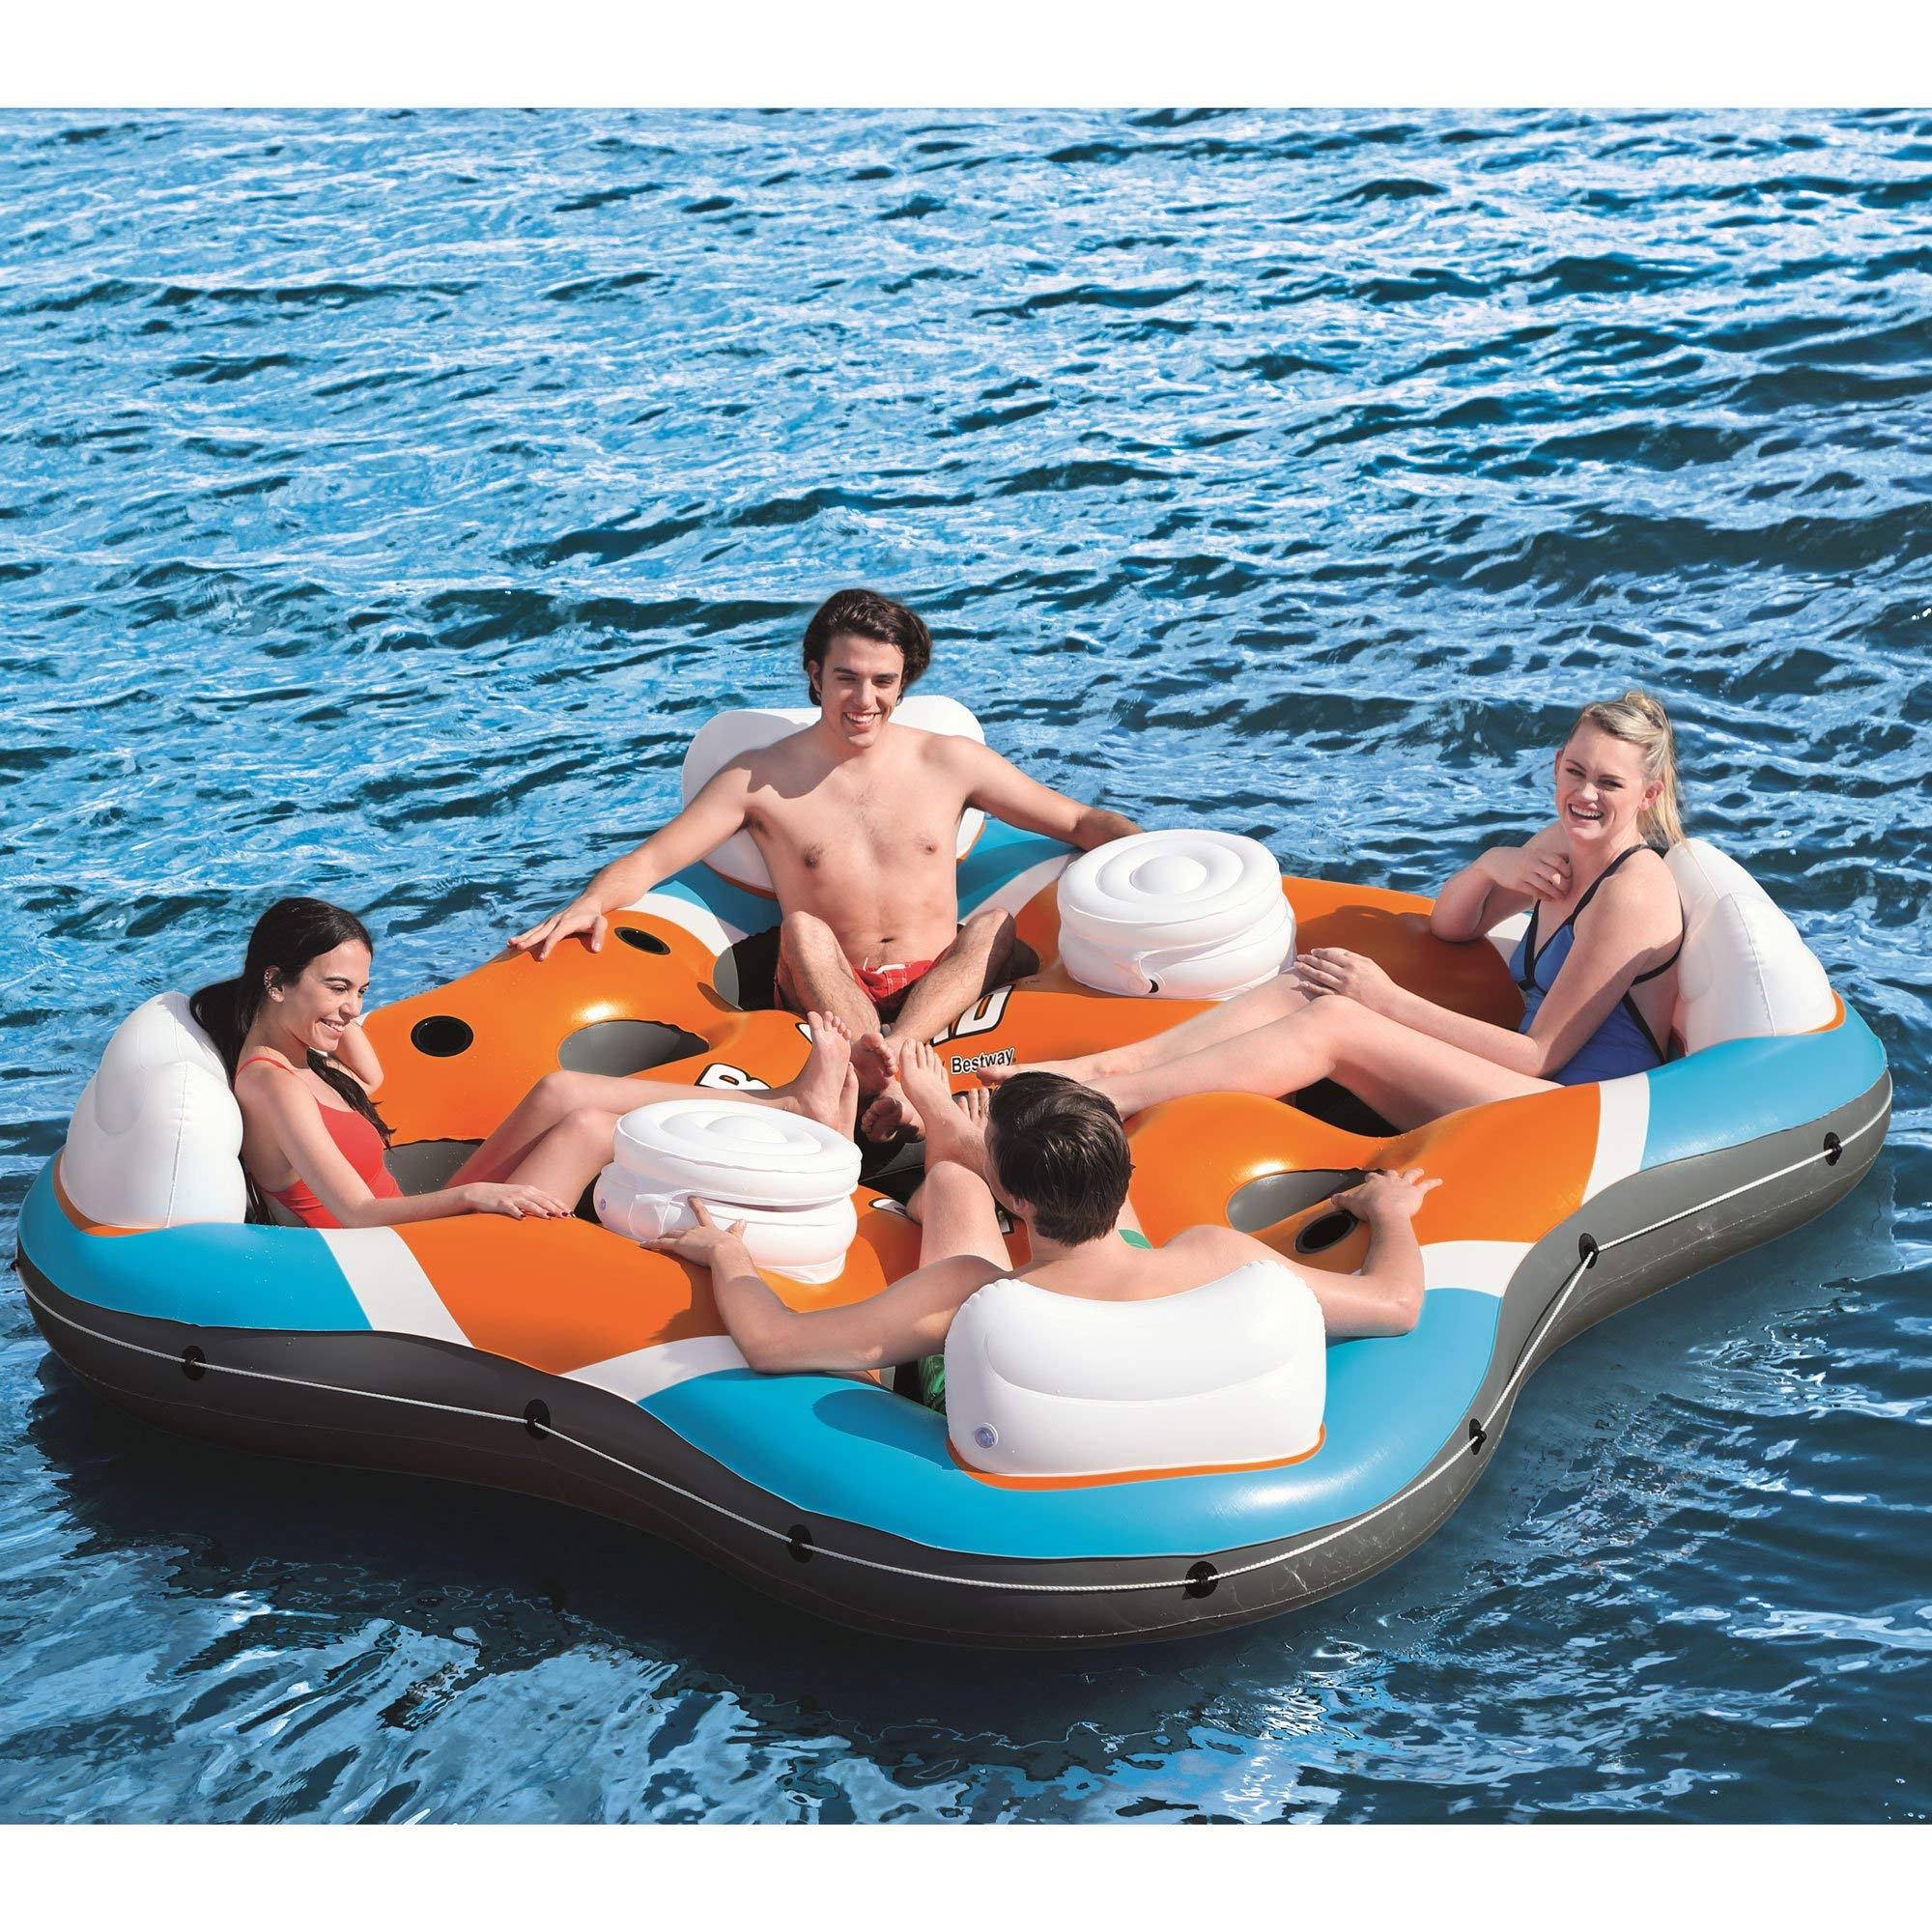 CoolerZ Rapid Rider X4 Inflatable 4-Person Island Tube by Bestway (Image #10)